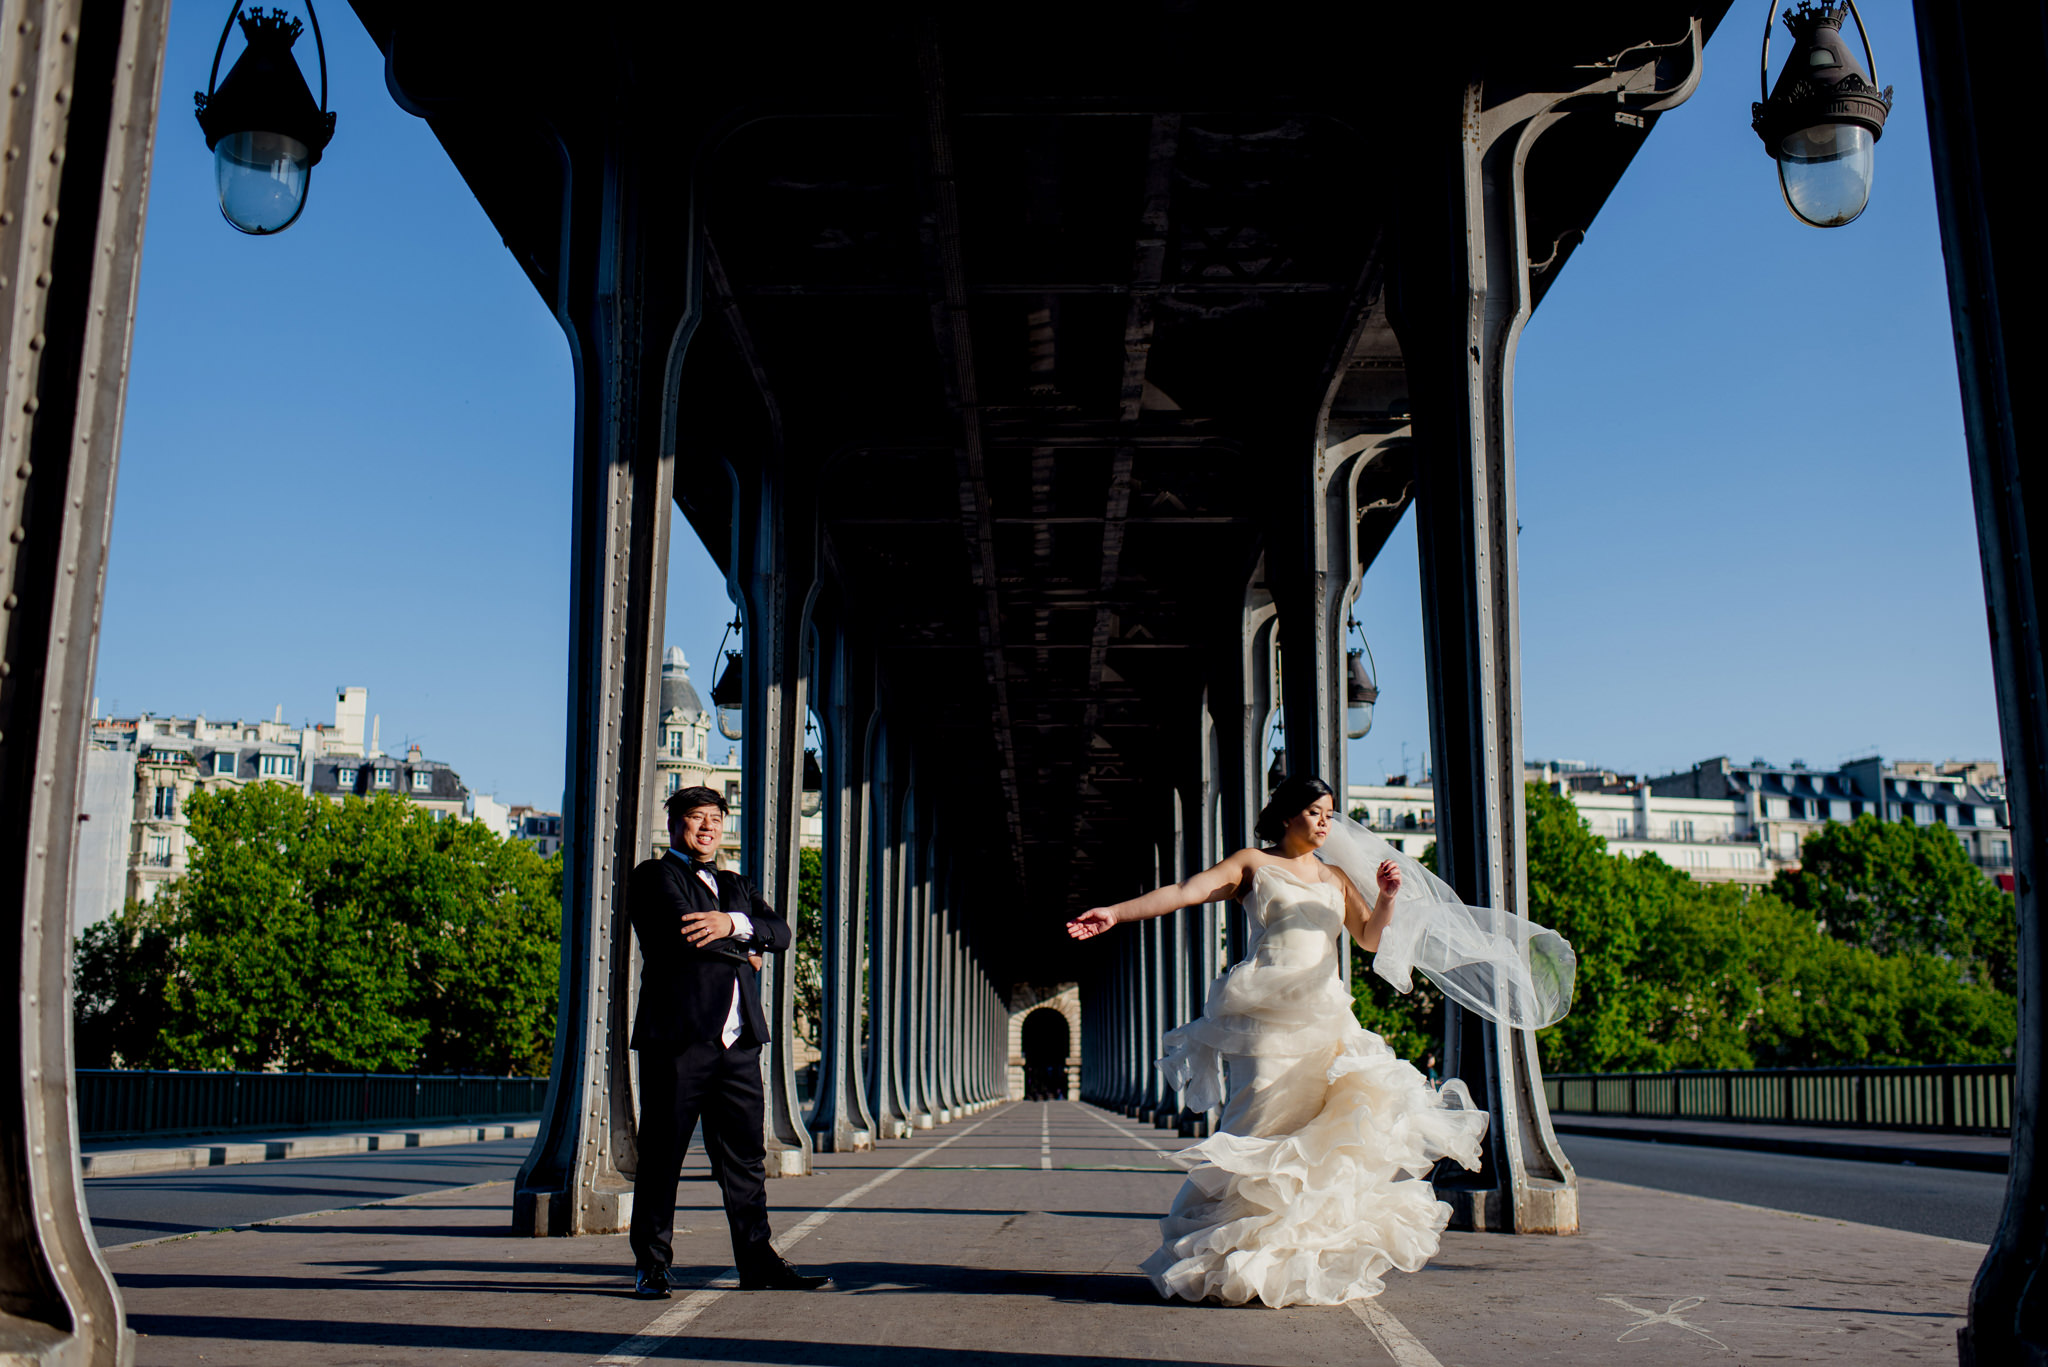 Bride twirls next to her groom on the Bir-Hakeim bride, Paris